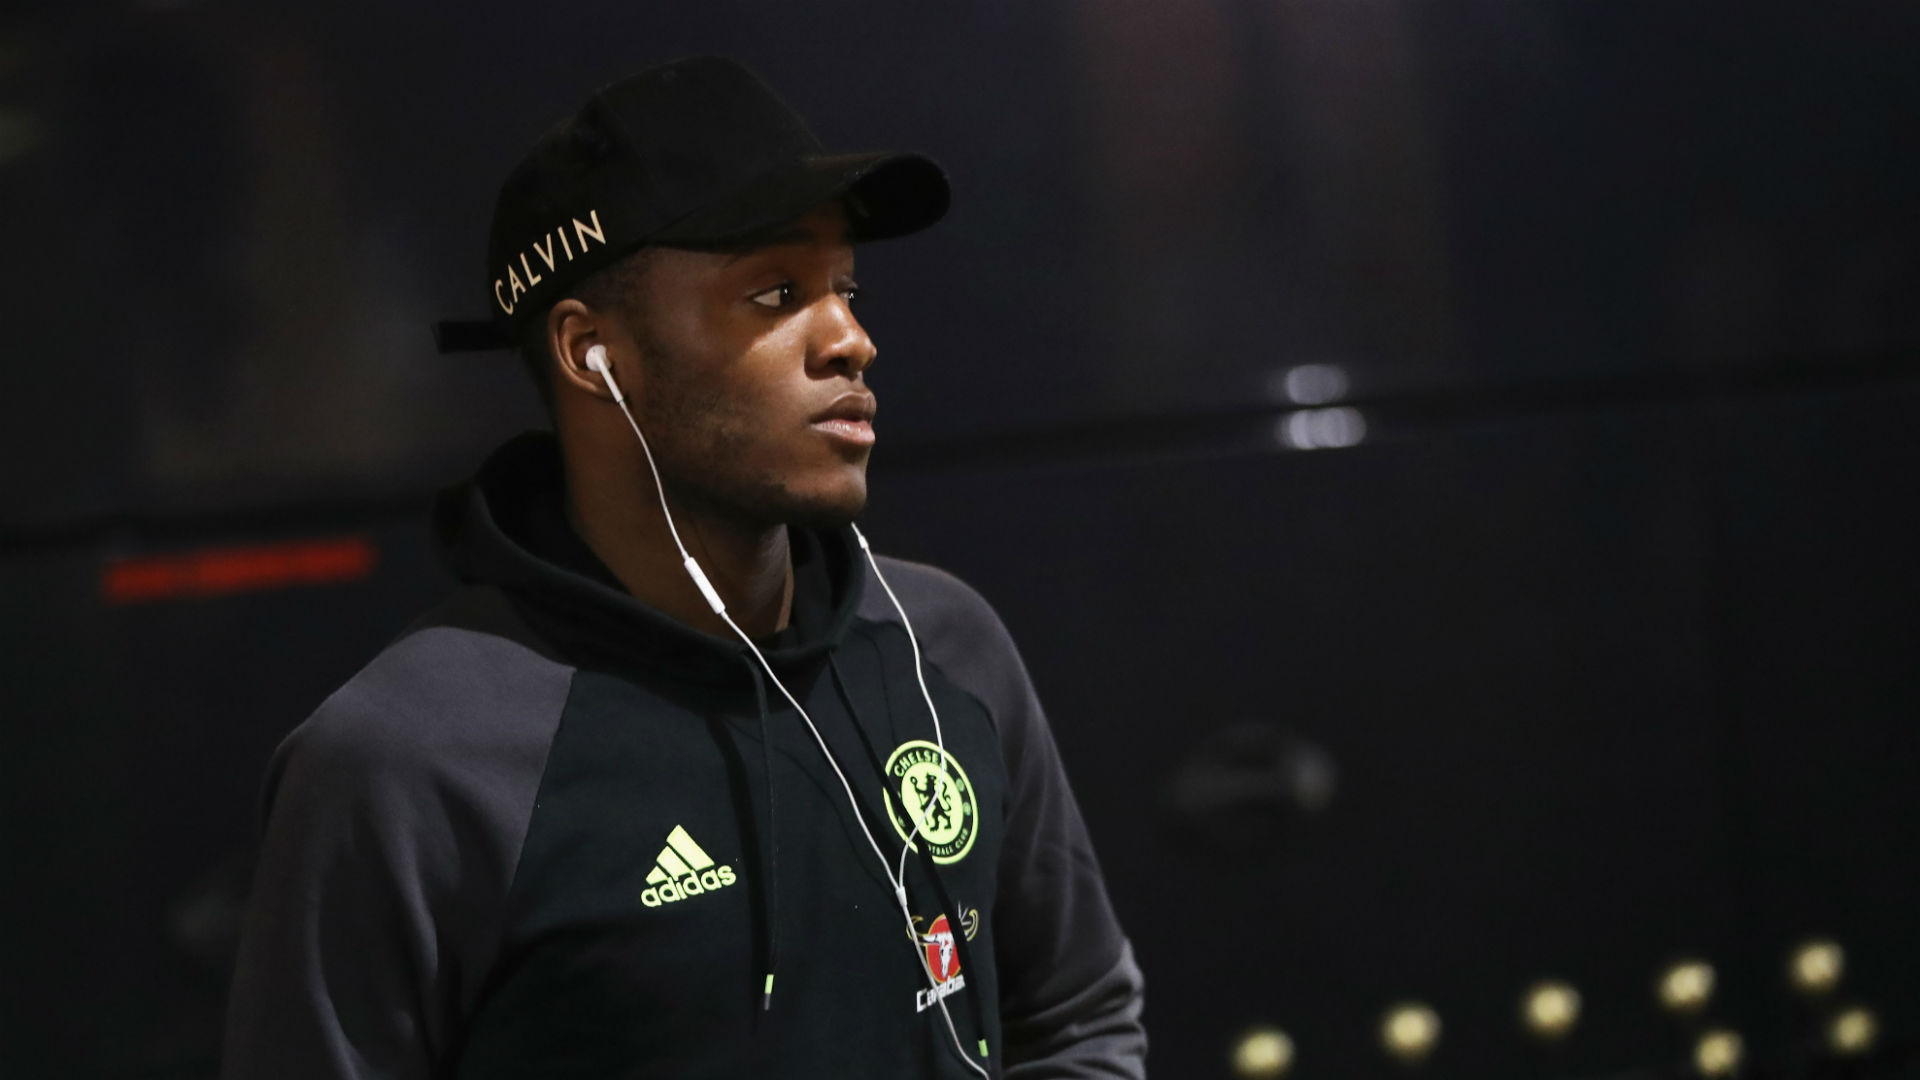 Batshuayi won't be sent out on loan, says Conte